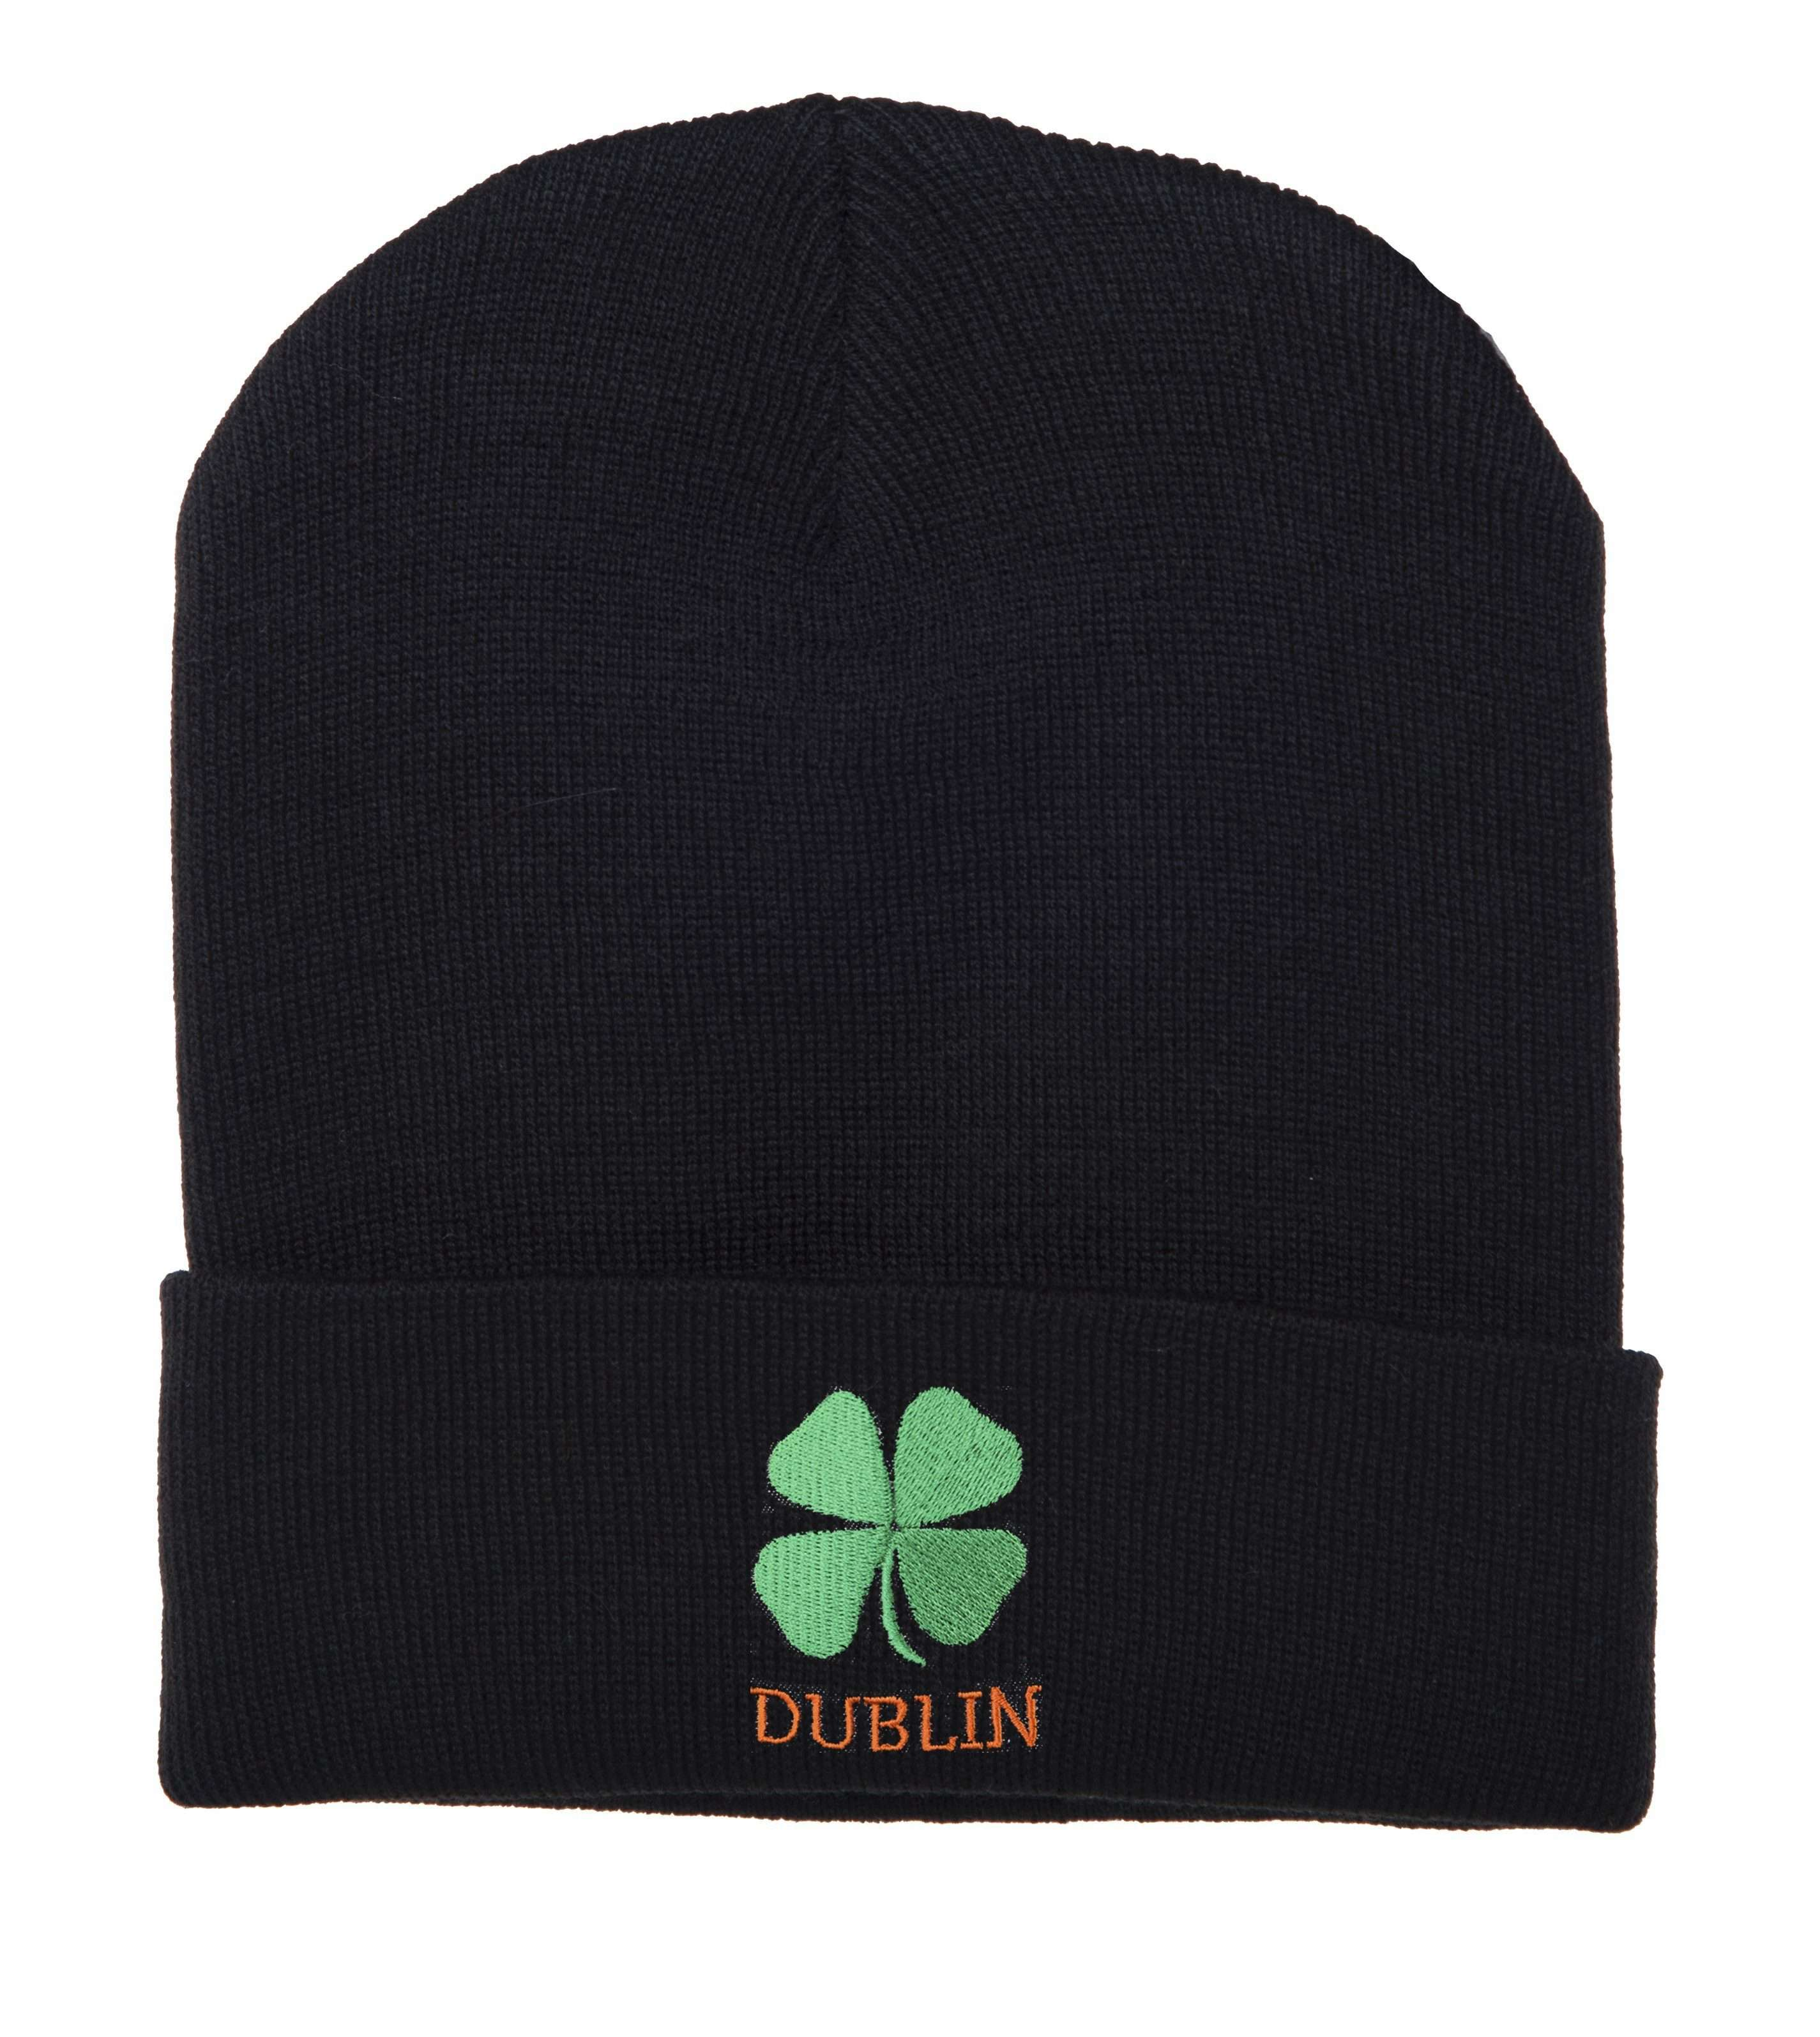 Hat - St Patrick's Day Wool Hat, Four Leaf Clover Wool Beanie Hat - Clover & Dublin